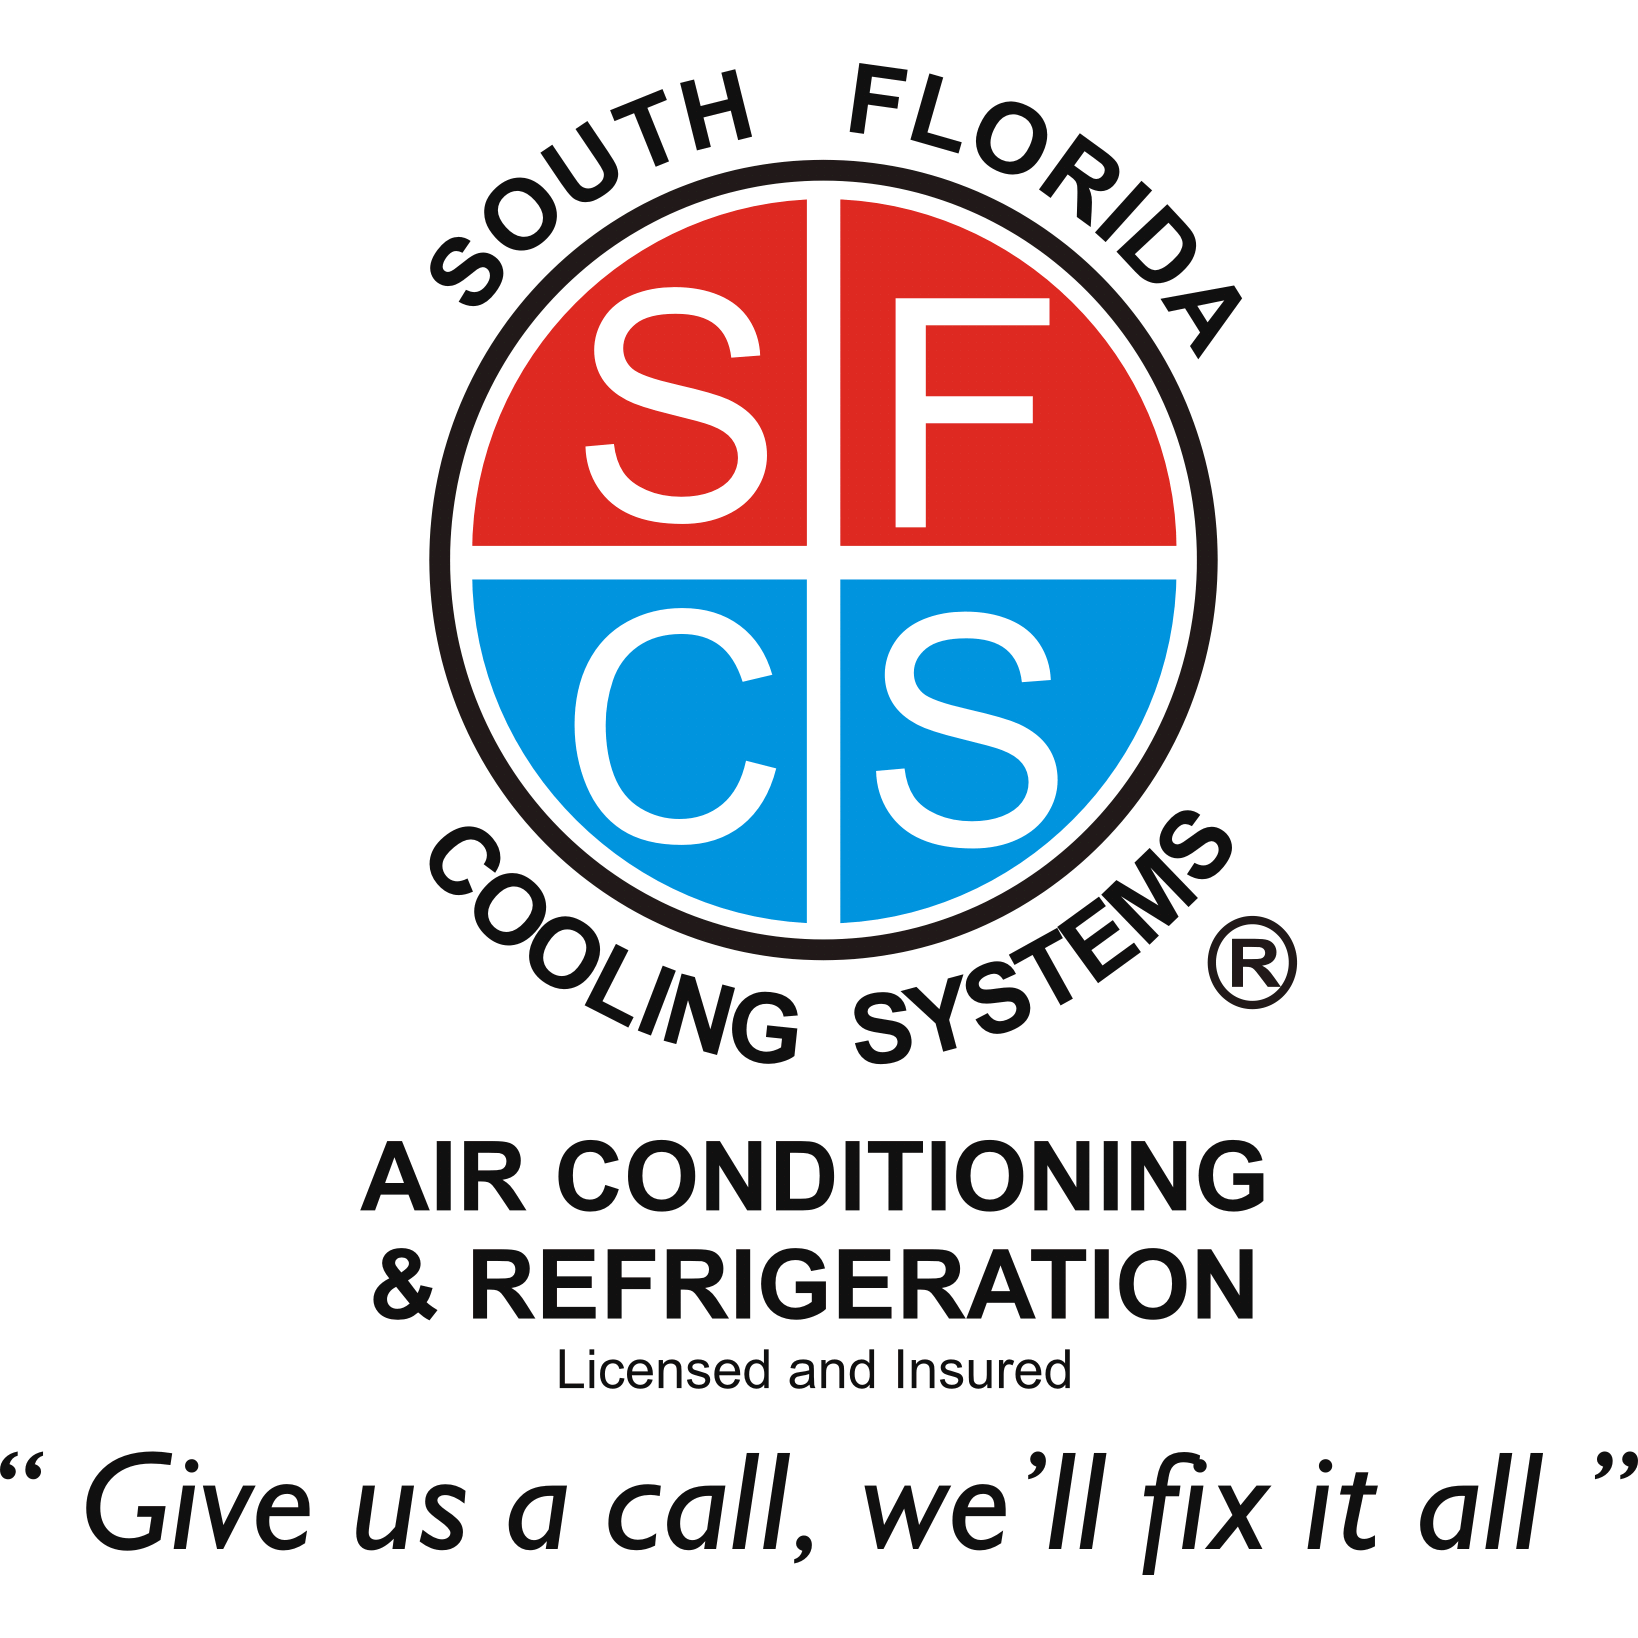 South Florida Cooling Systems Inc